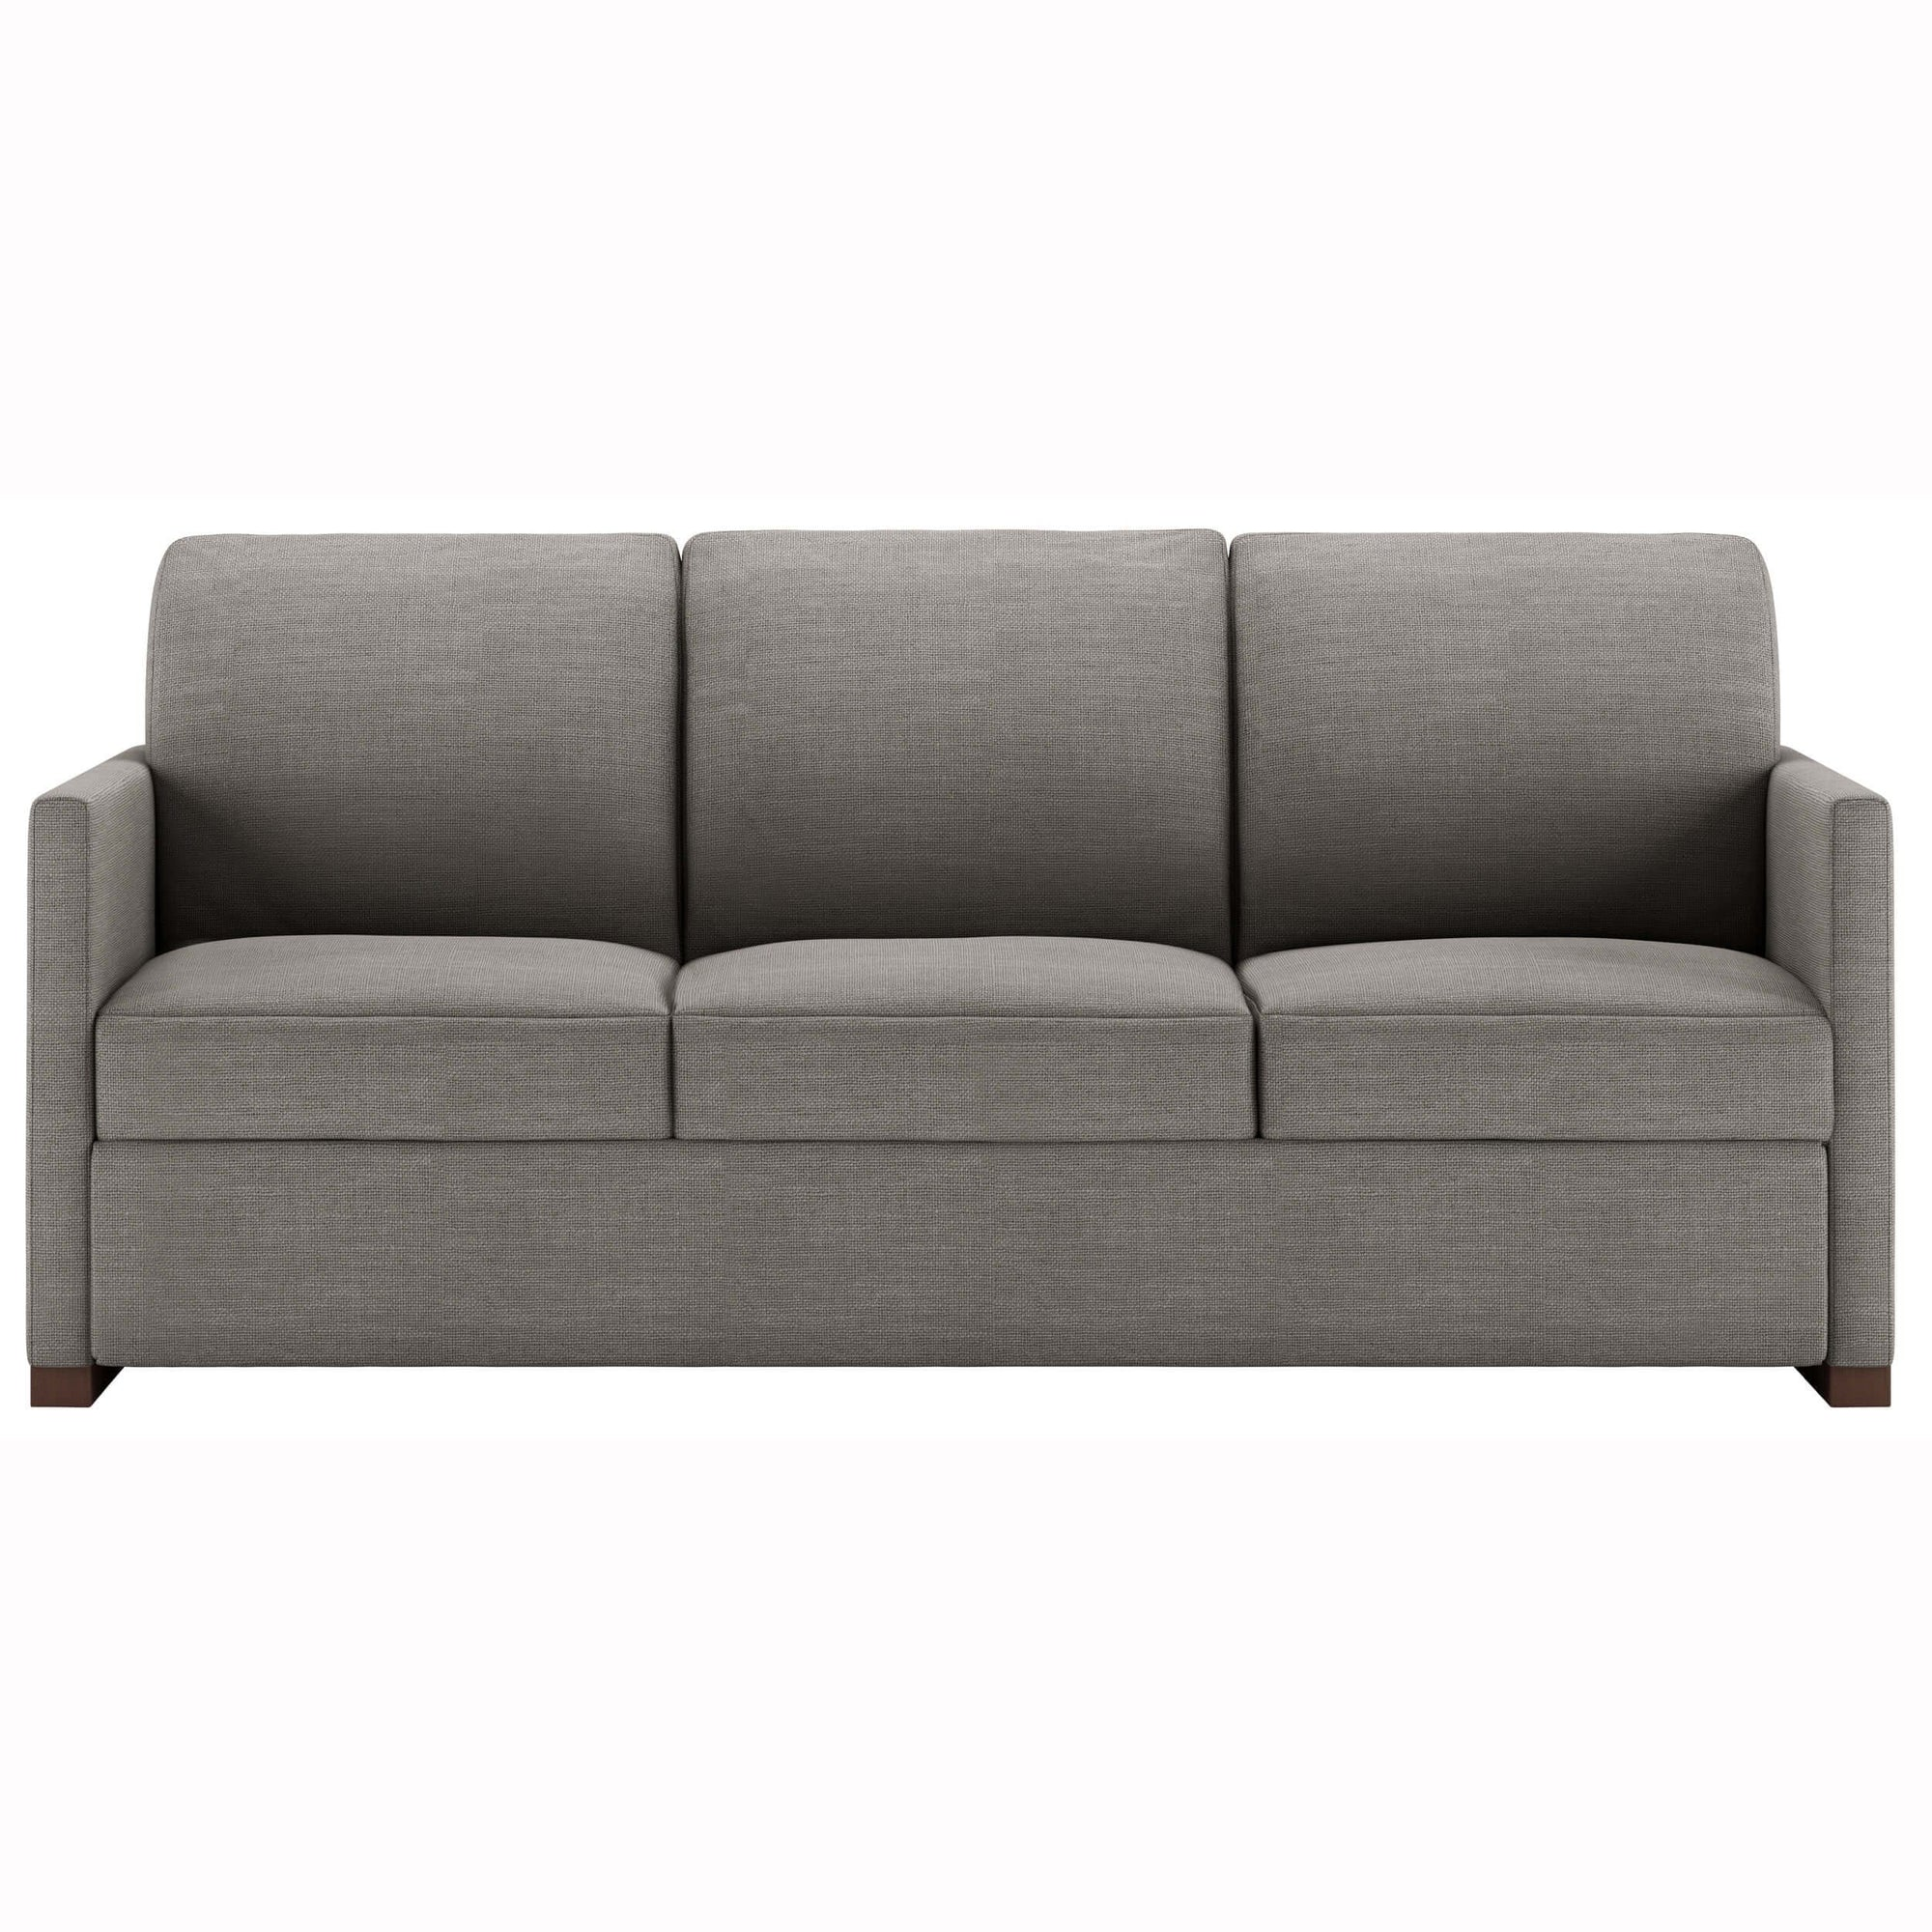 - American Leather Pearson Queen Sleeper Sofa, Epic Gray – High